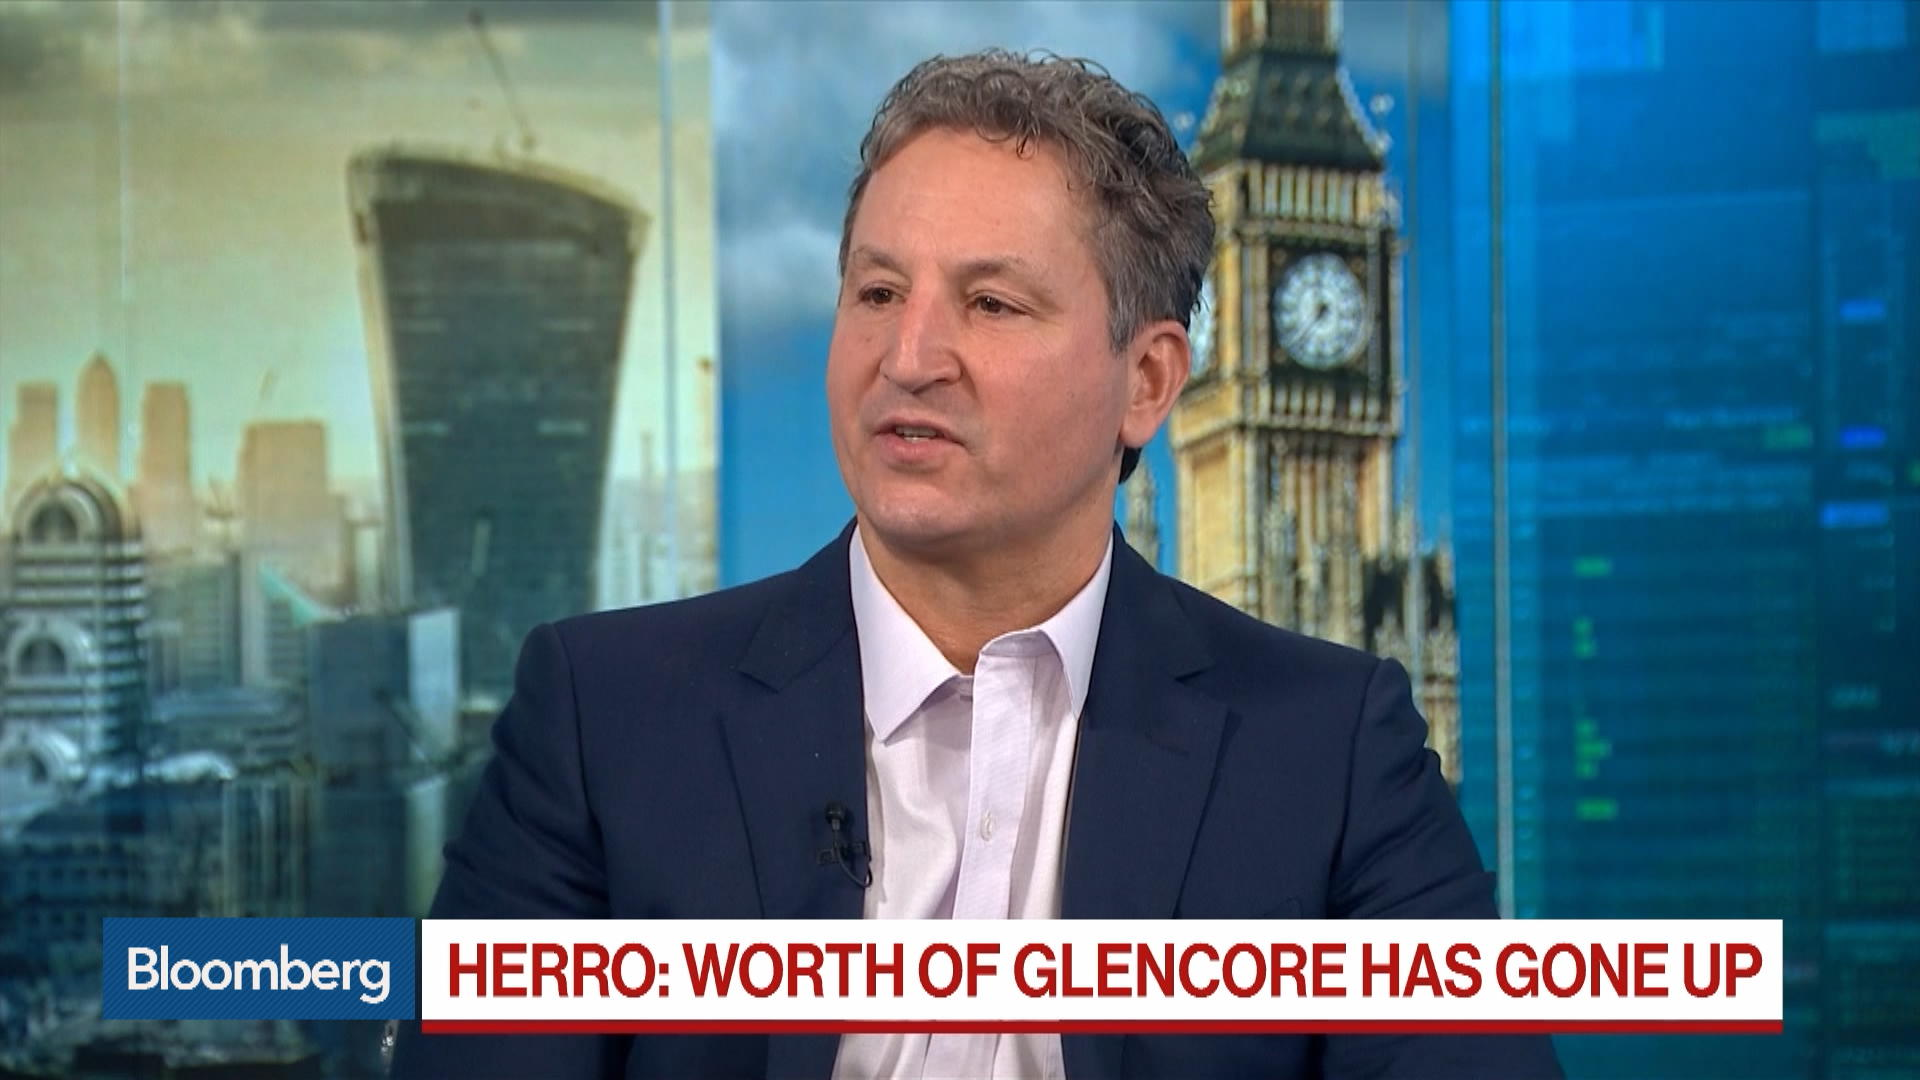 Glencore's Valuation 'Far Too Low Today,' Herro Says